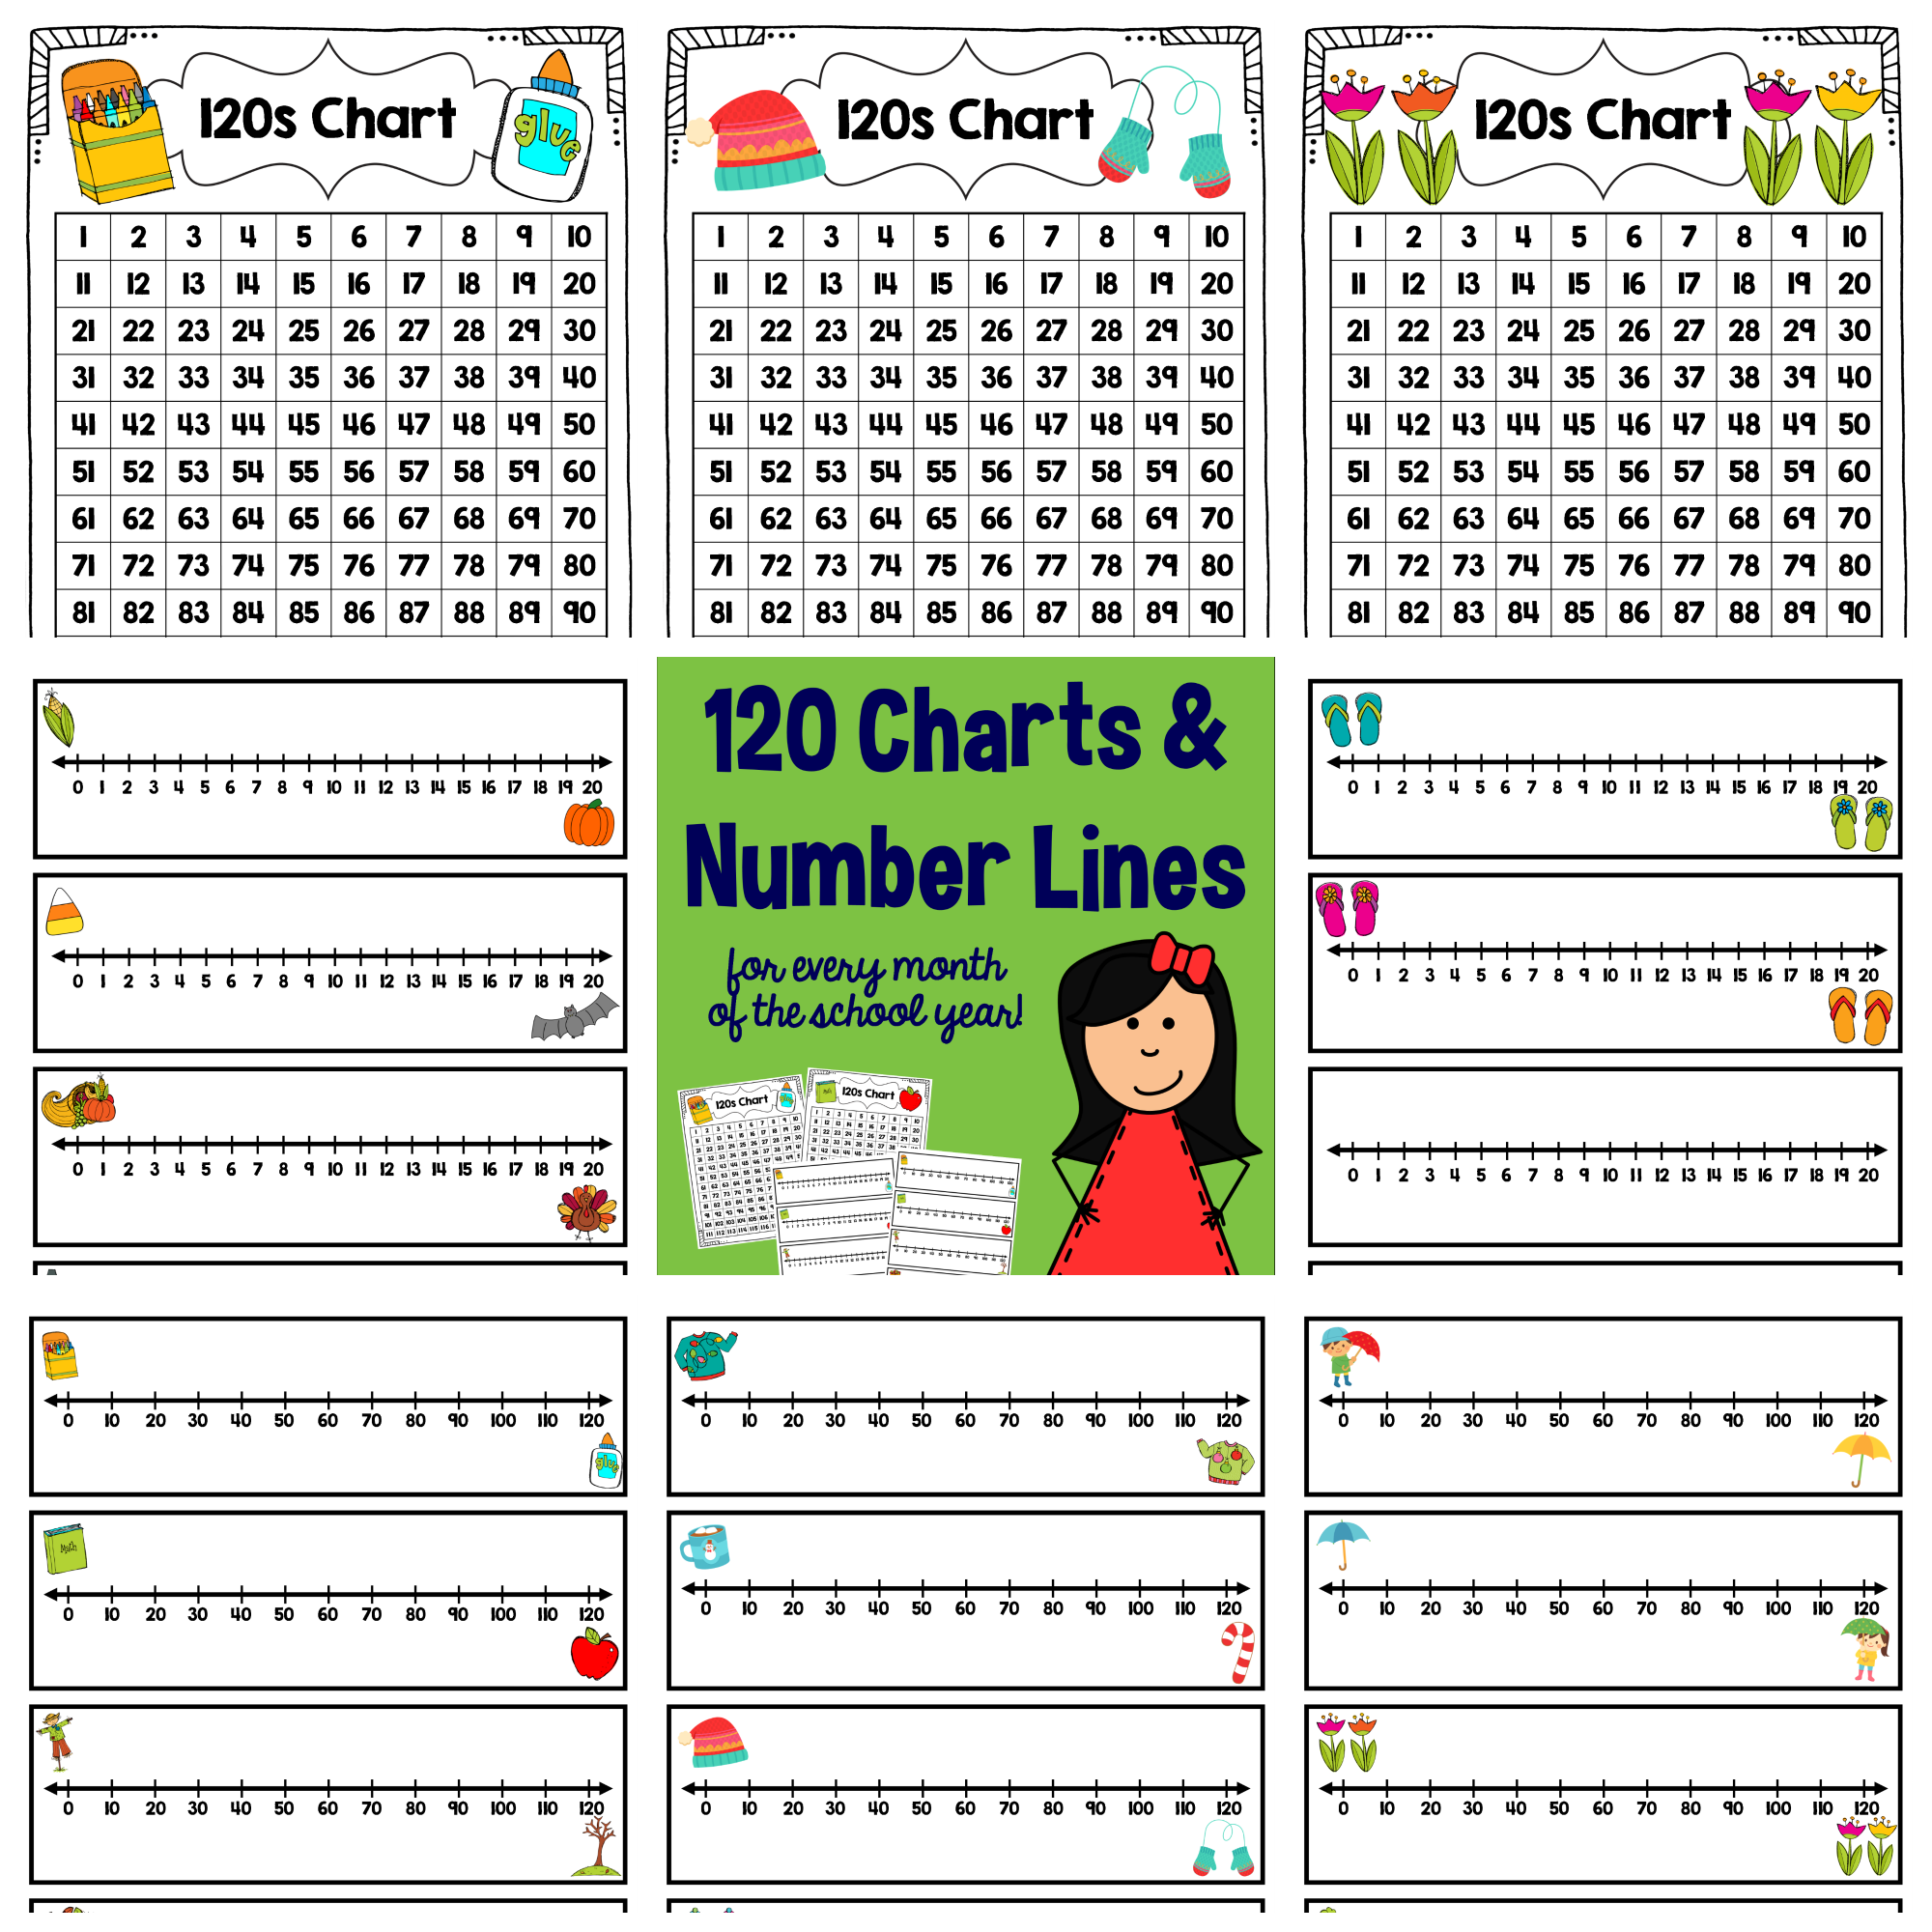 120 Charts Number Lines 120 Chart Number Line Math Instruction